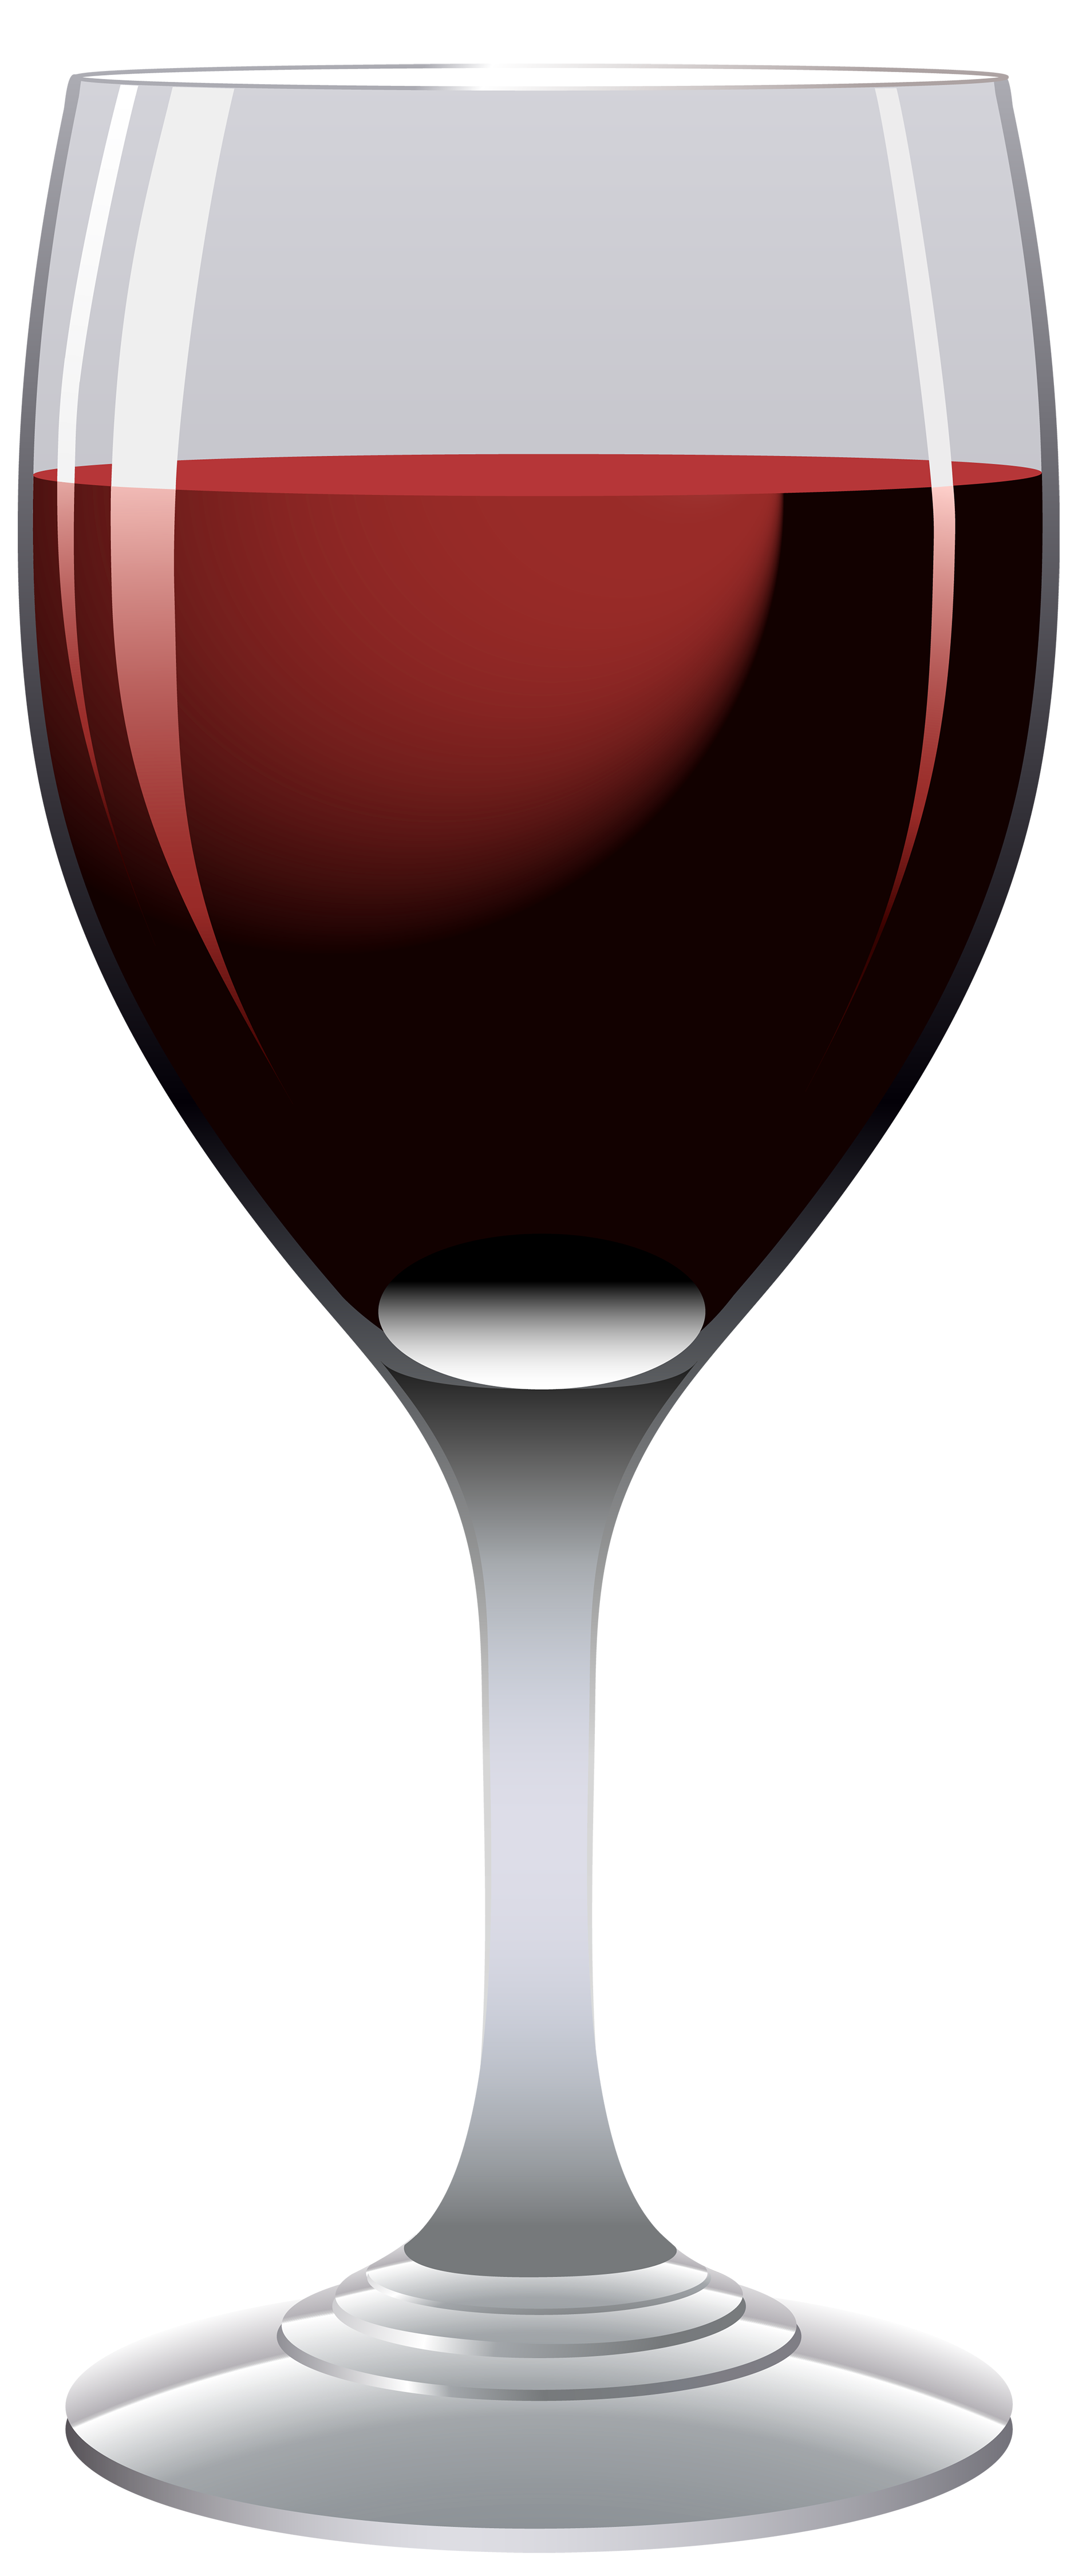 red wine glass png